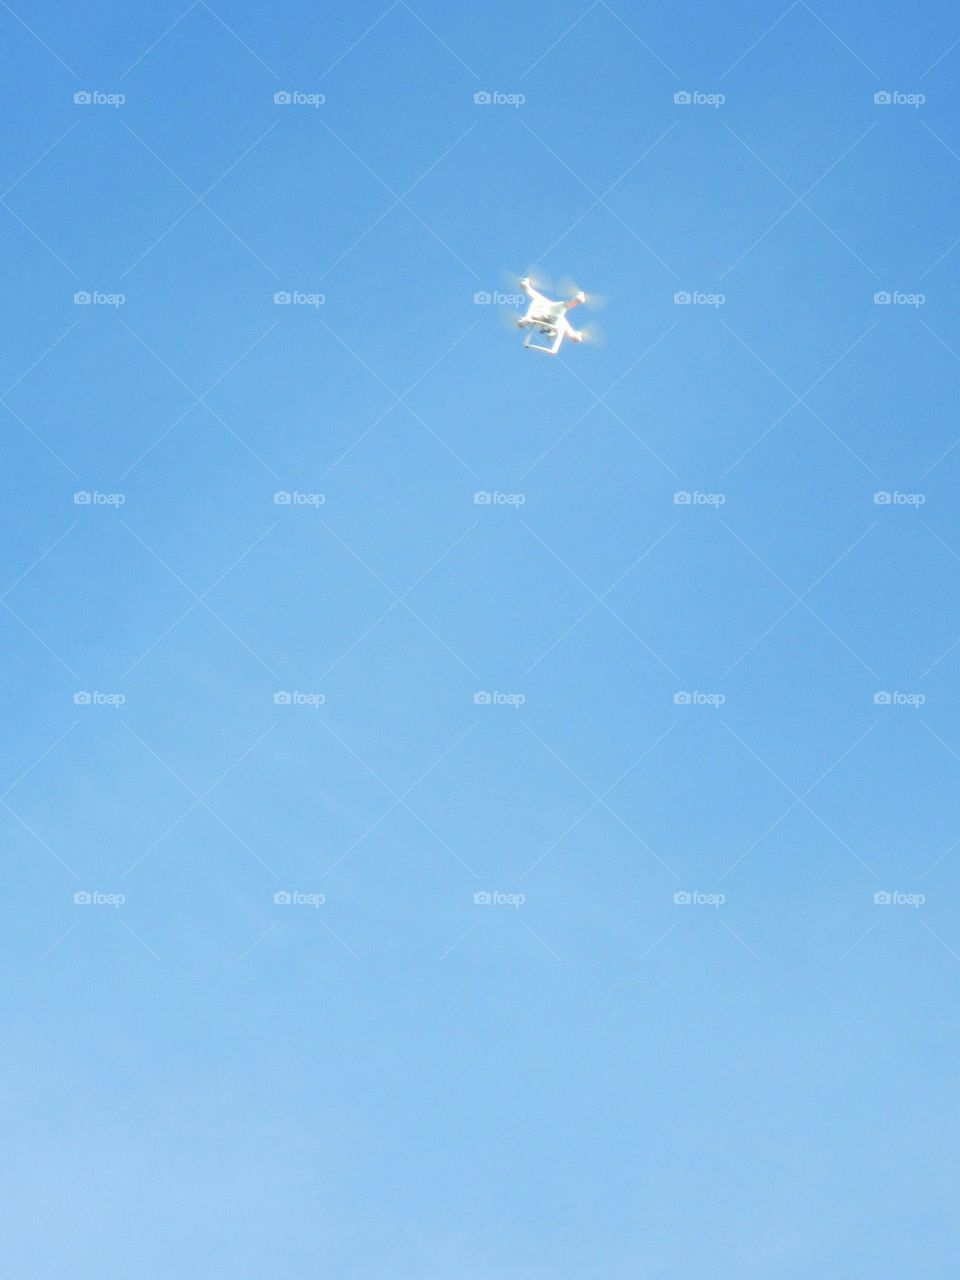 Drone in flight against clear blue sky